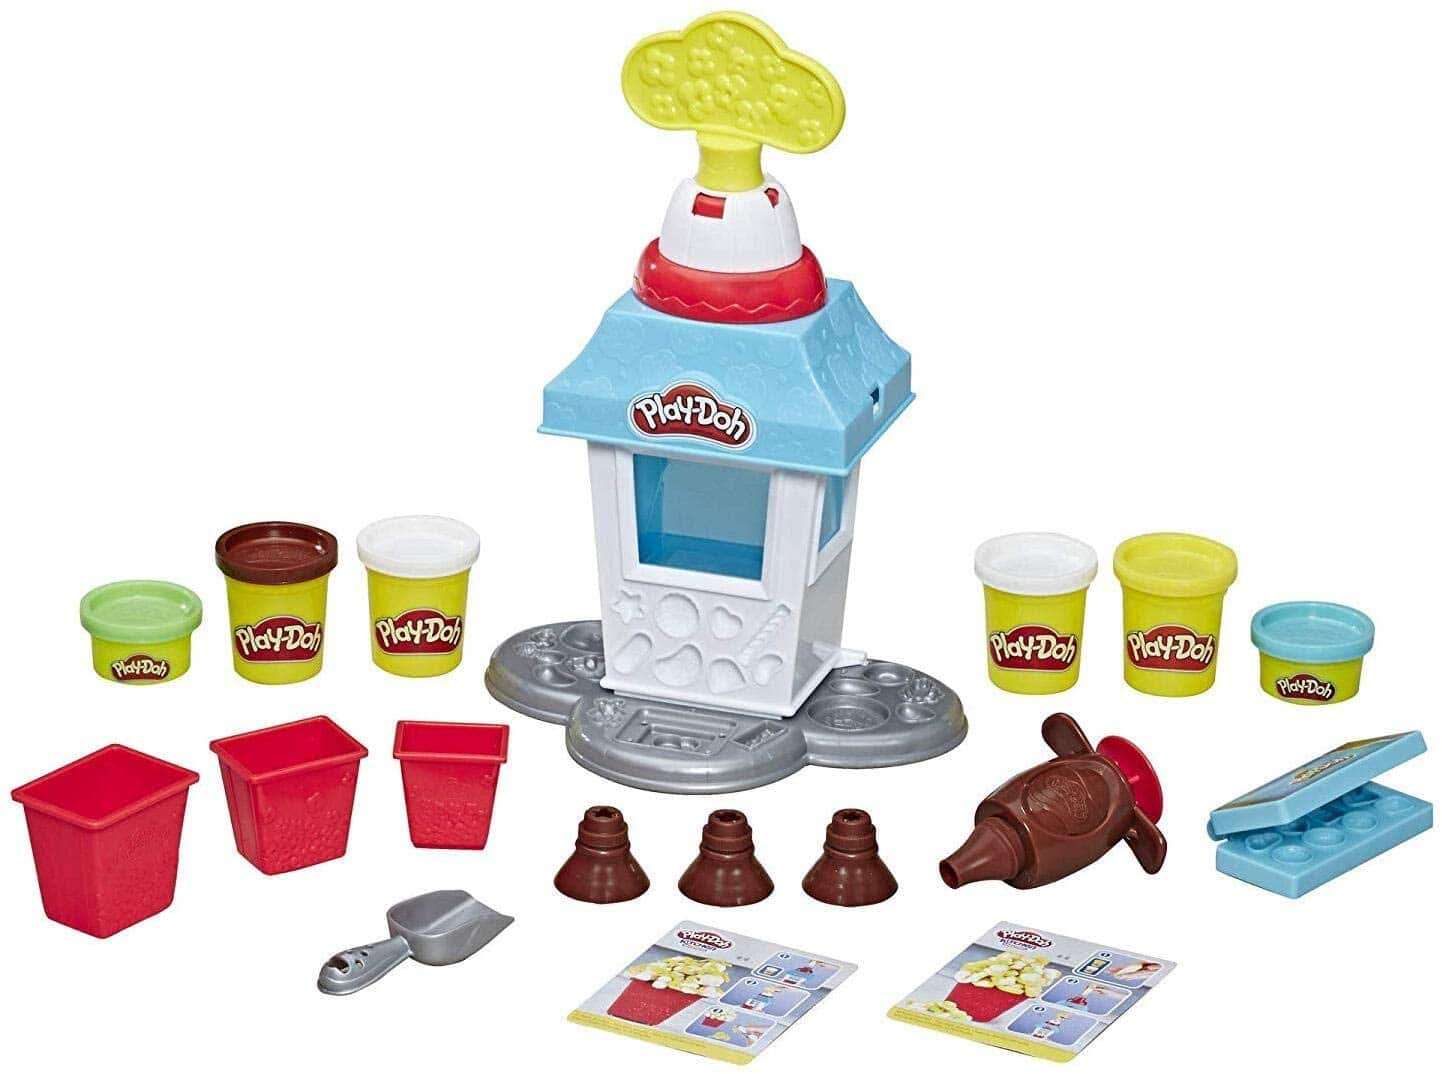 Play-Doh Kitchen Creations Popcorn Party Play Food Set $8.90 - Amazon